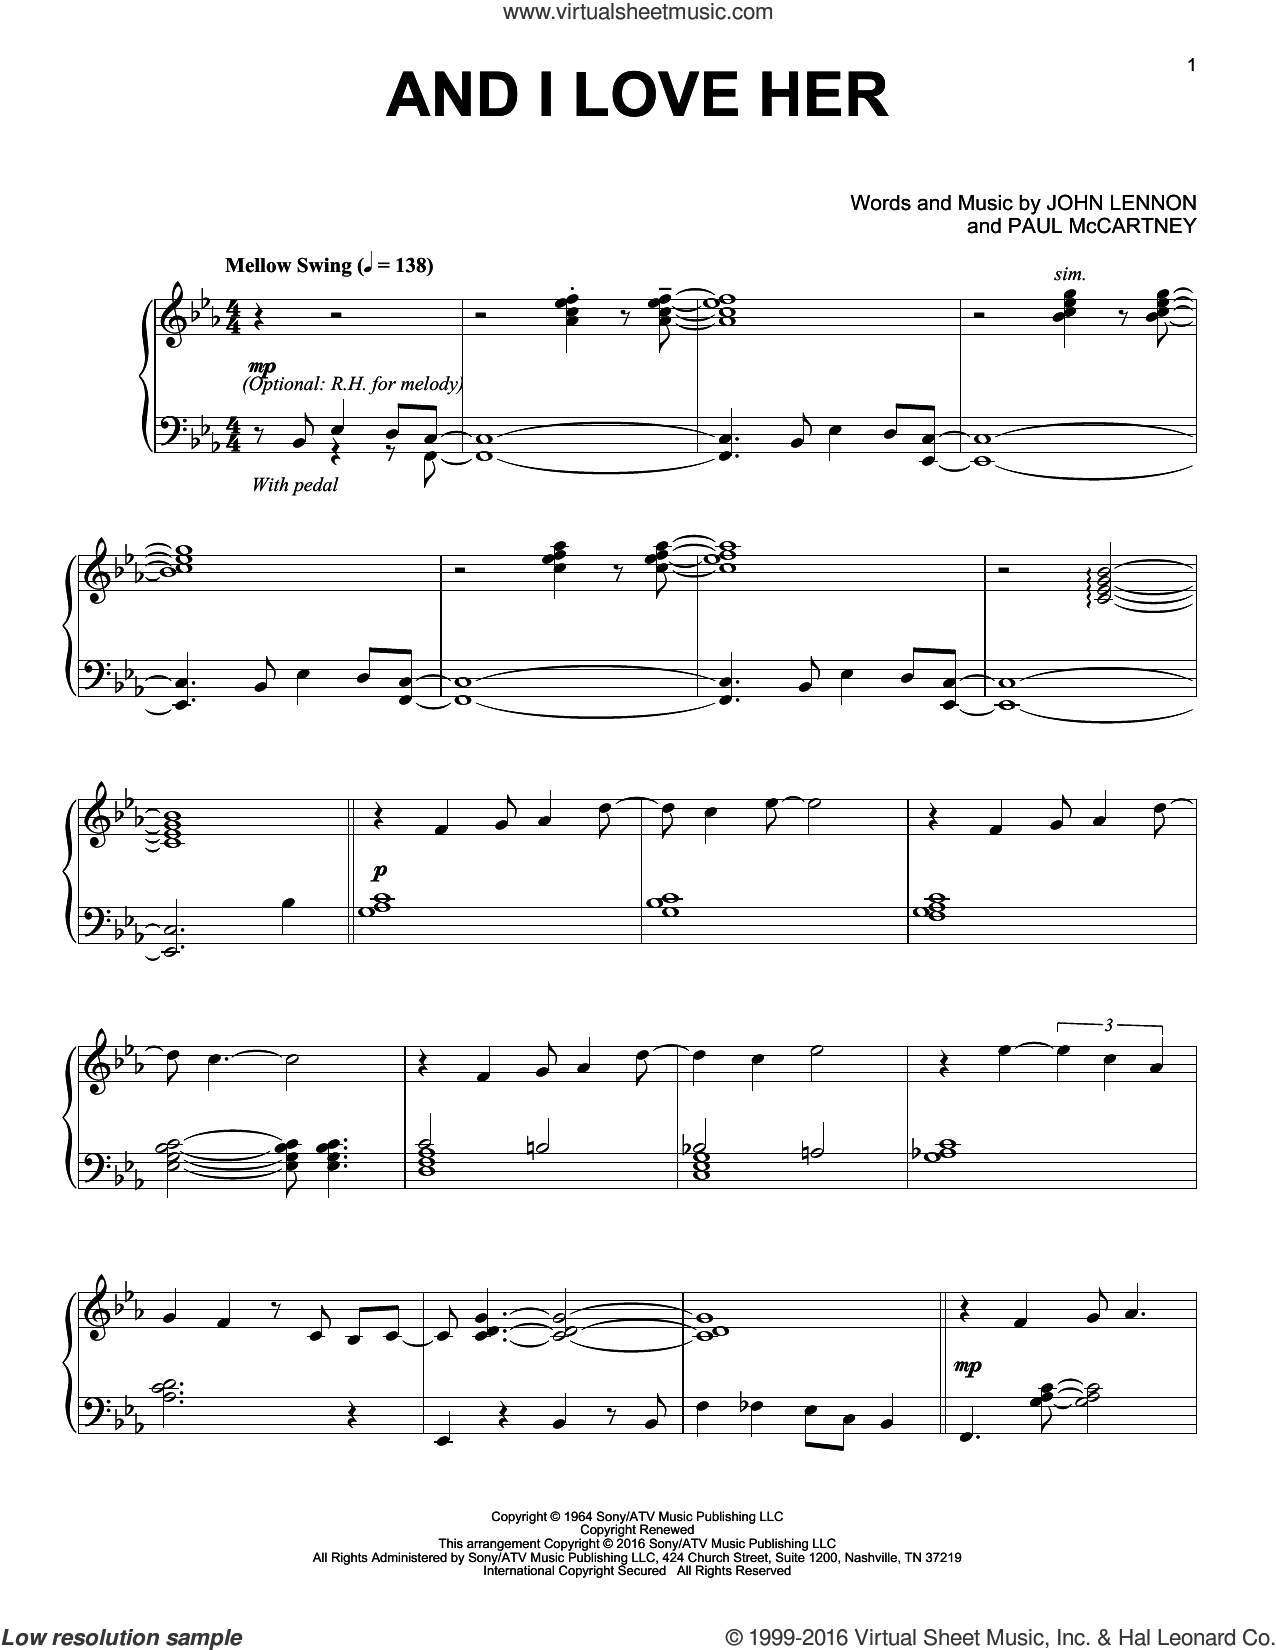 And I Love Her [Jazz version] sheet music for piano solo by The Beatles, John Lennon and Paul McCartney, intermediate skill level